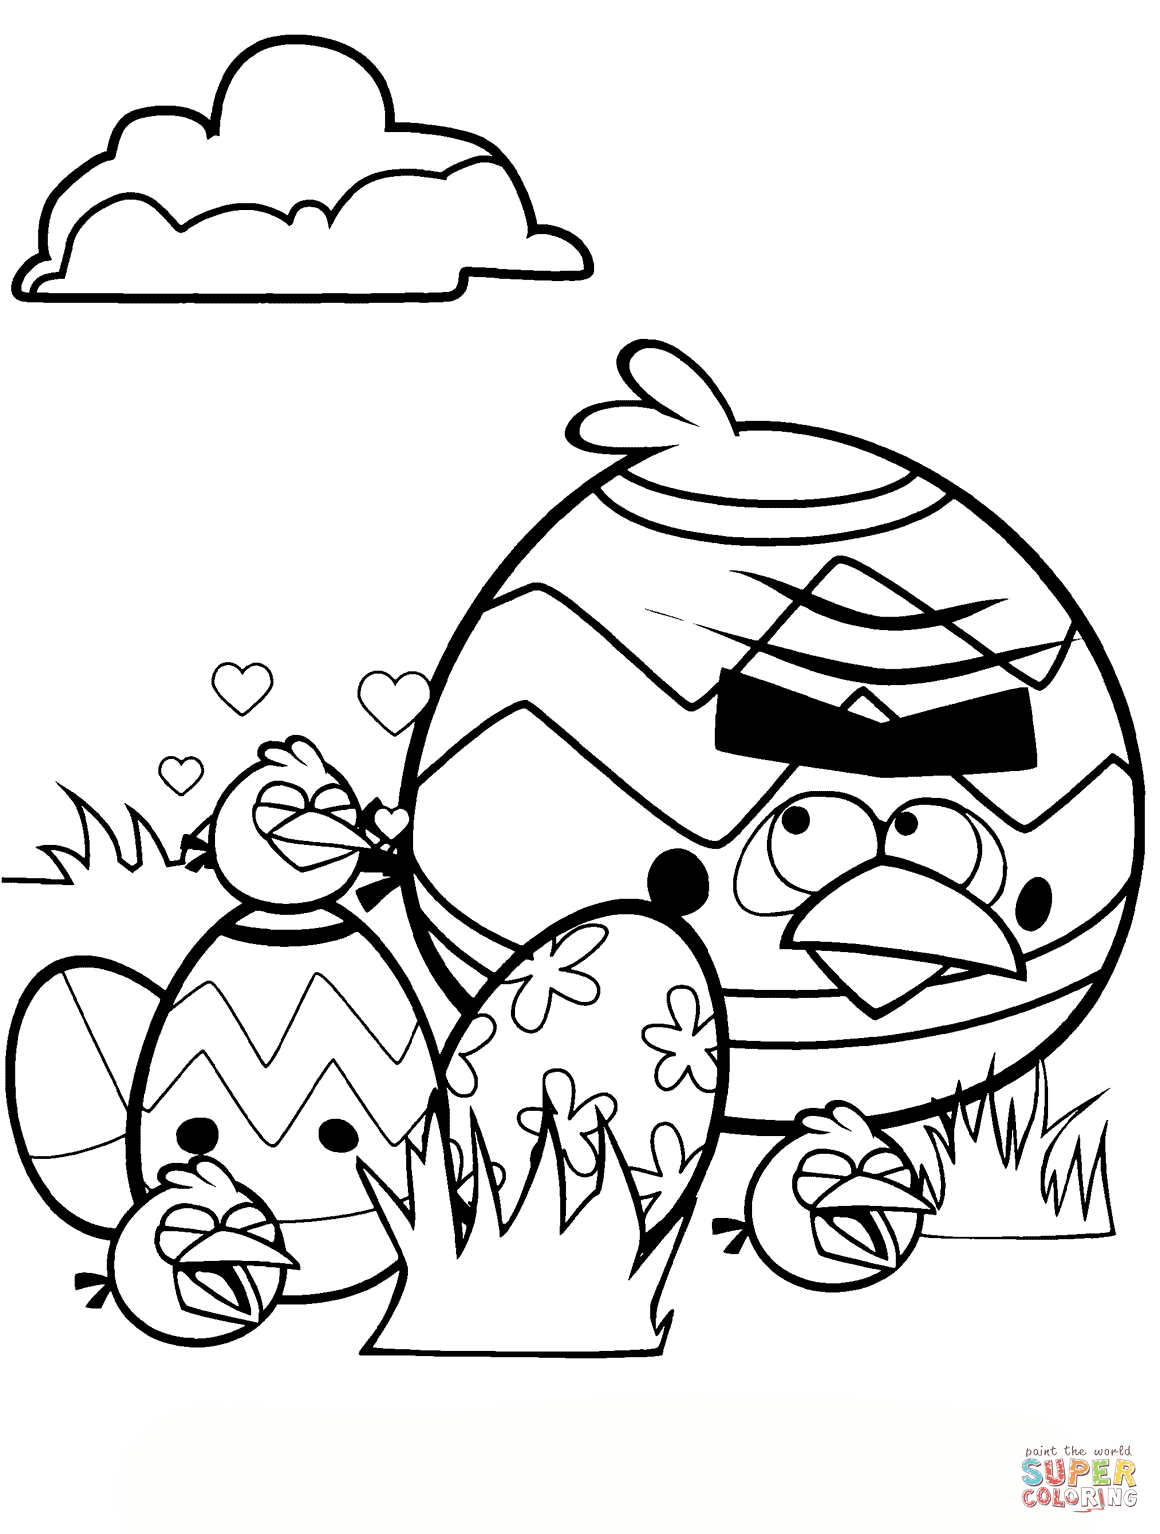 Angry birds red coloring pages coloring home for Angry birds coloring pages free printable